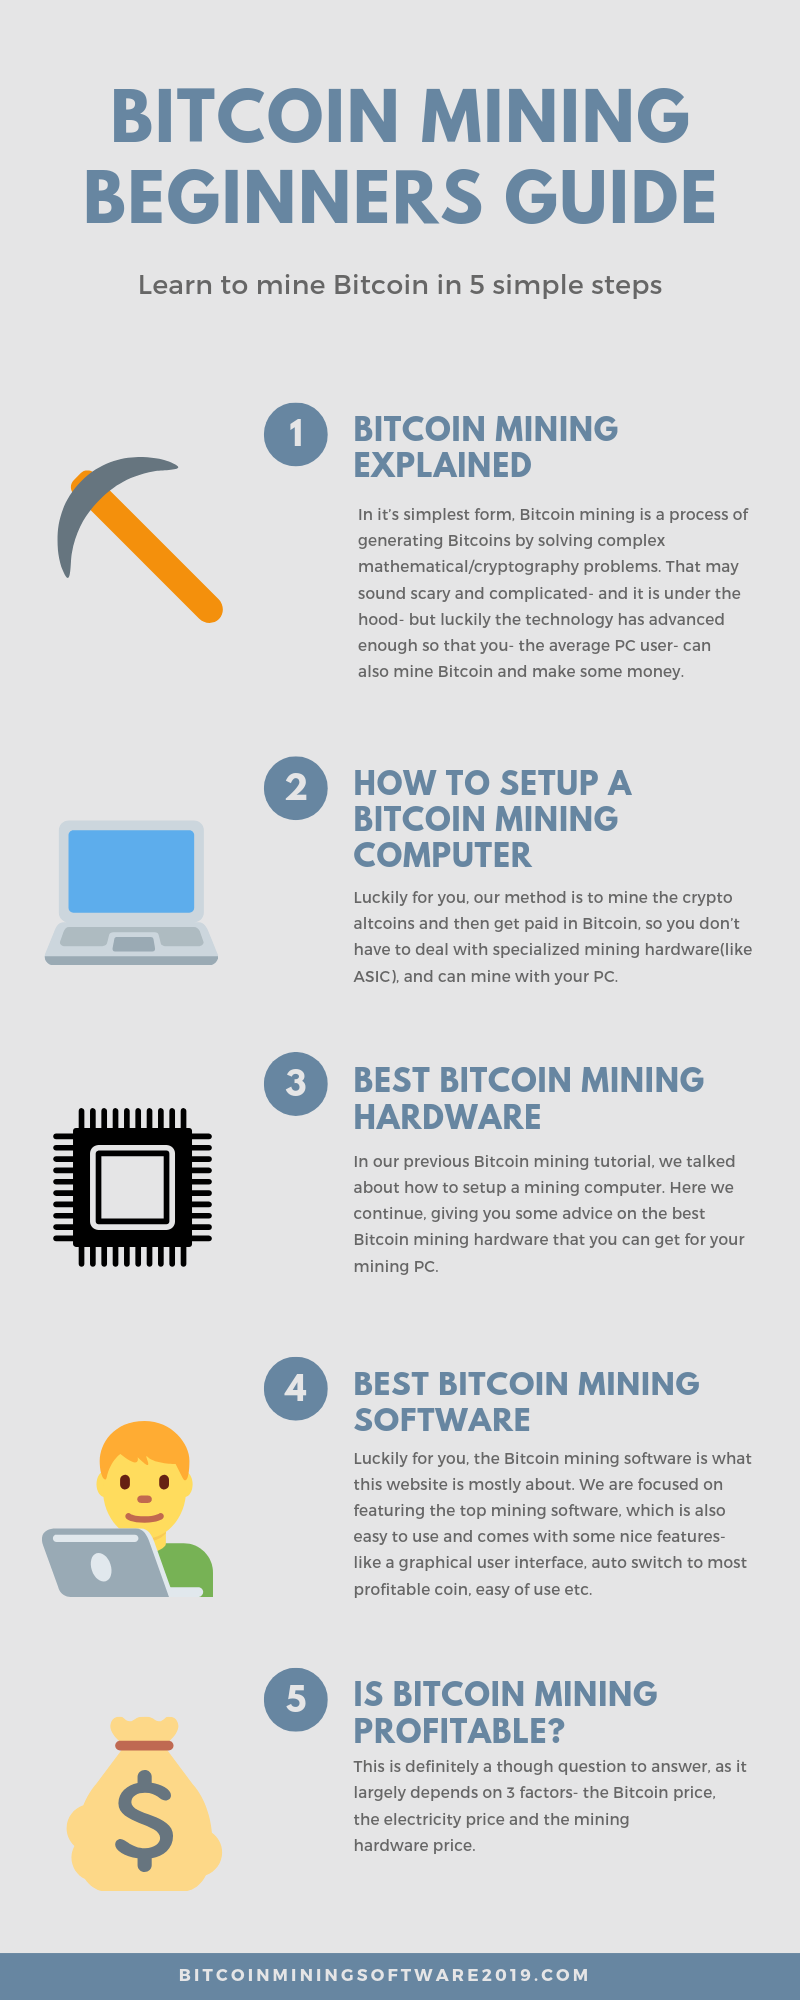 Bitcoin Mining Beginners Guide